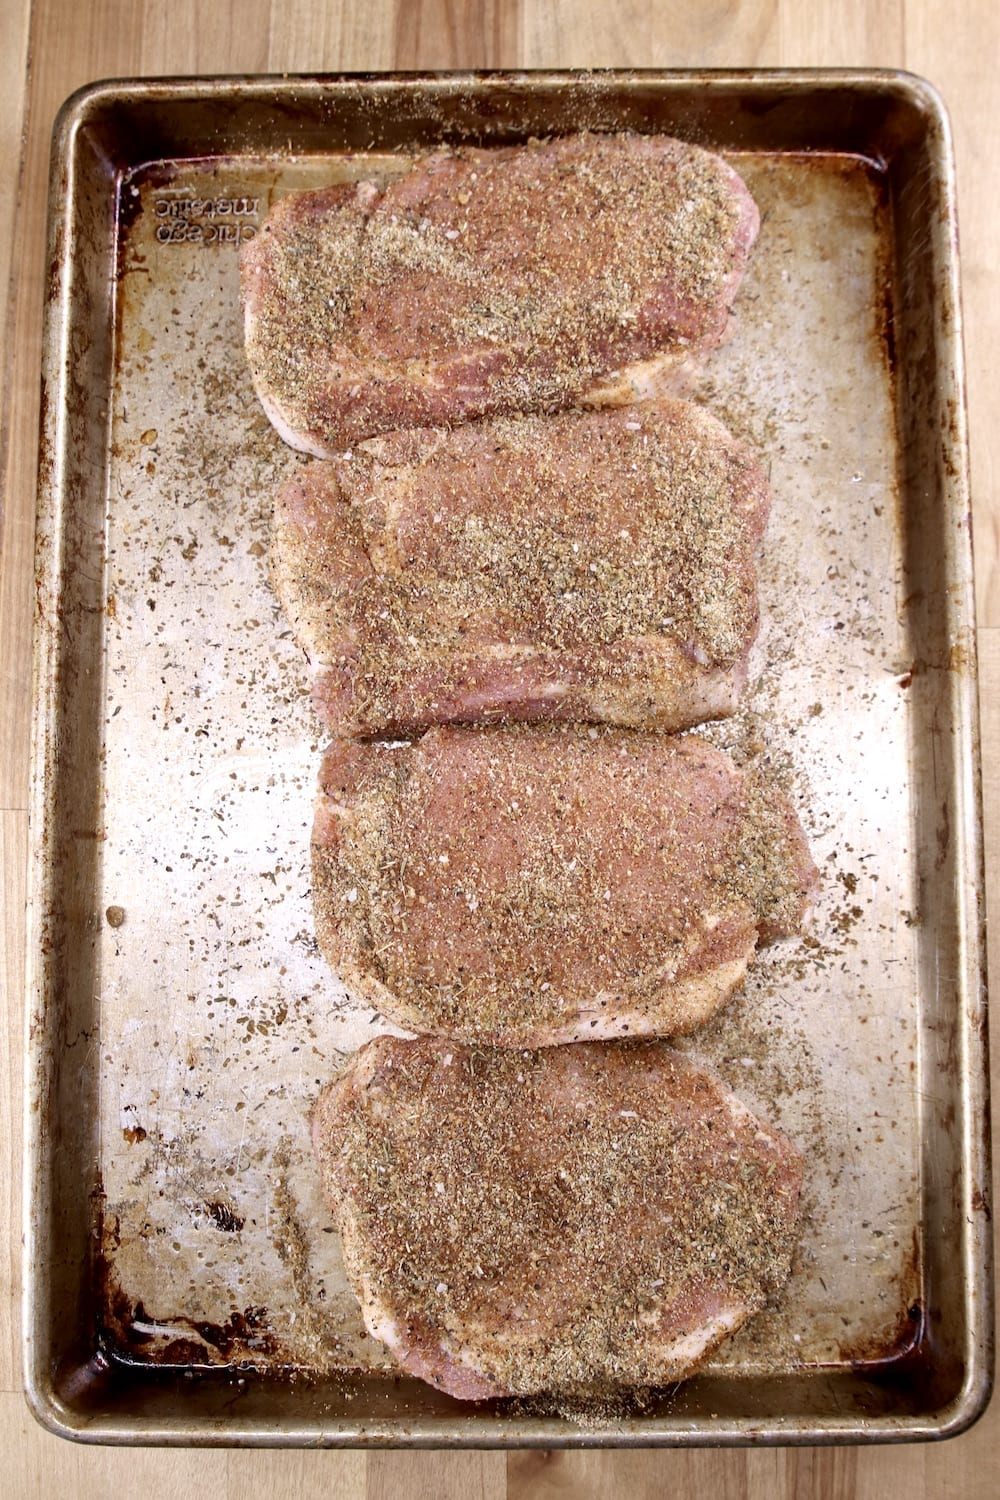 sheet pan with 4 dry rubbed pork chops